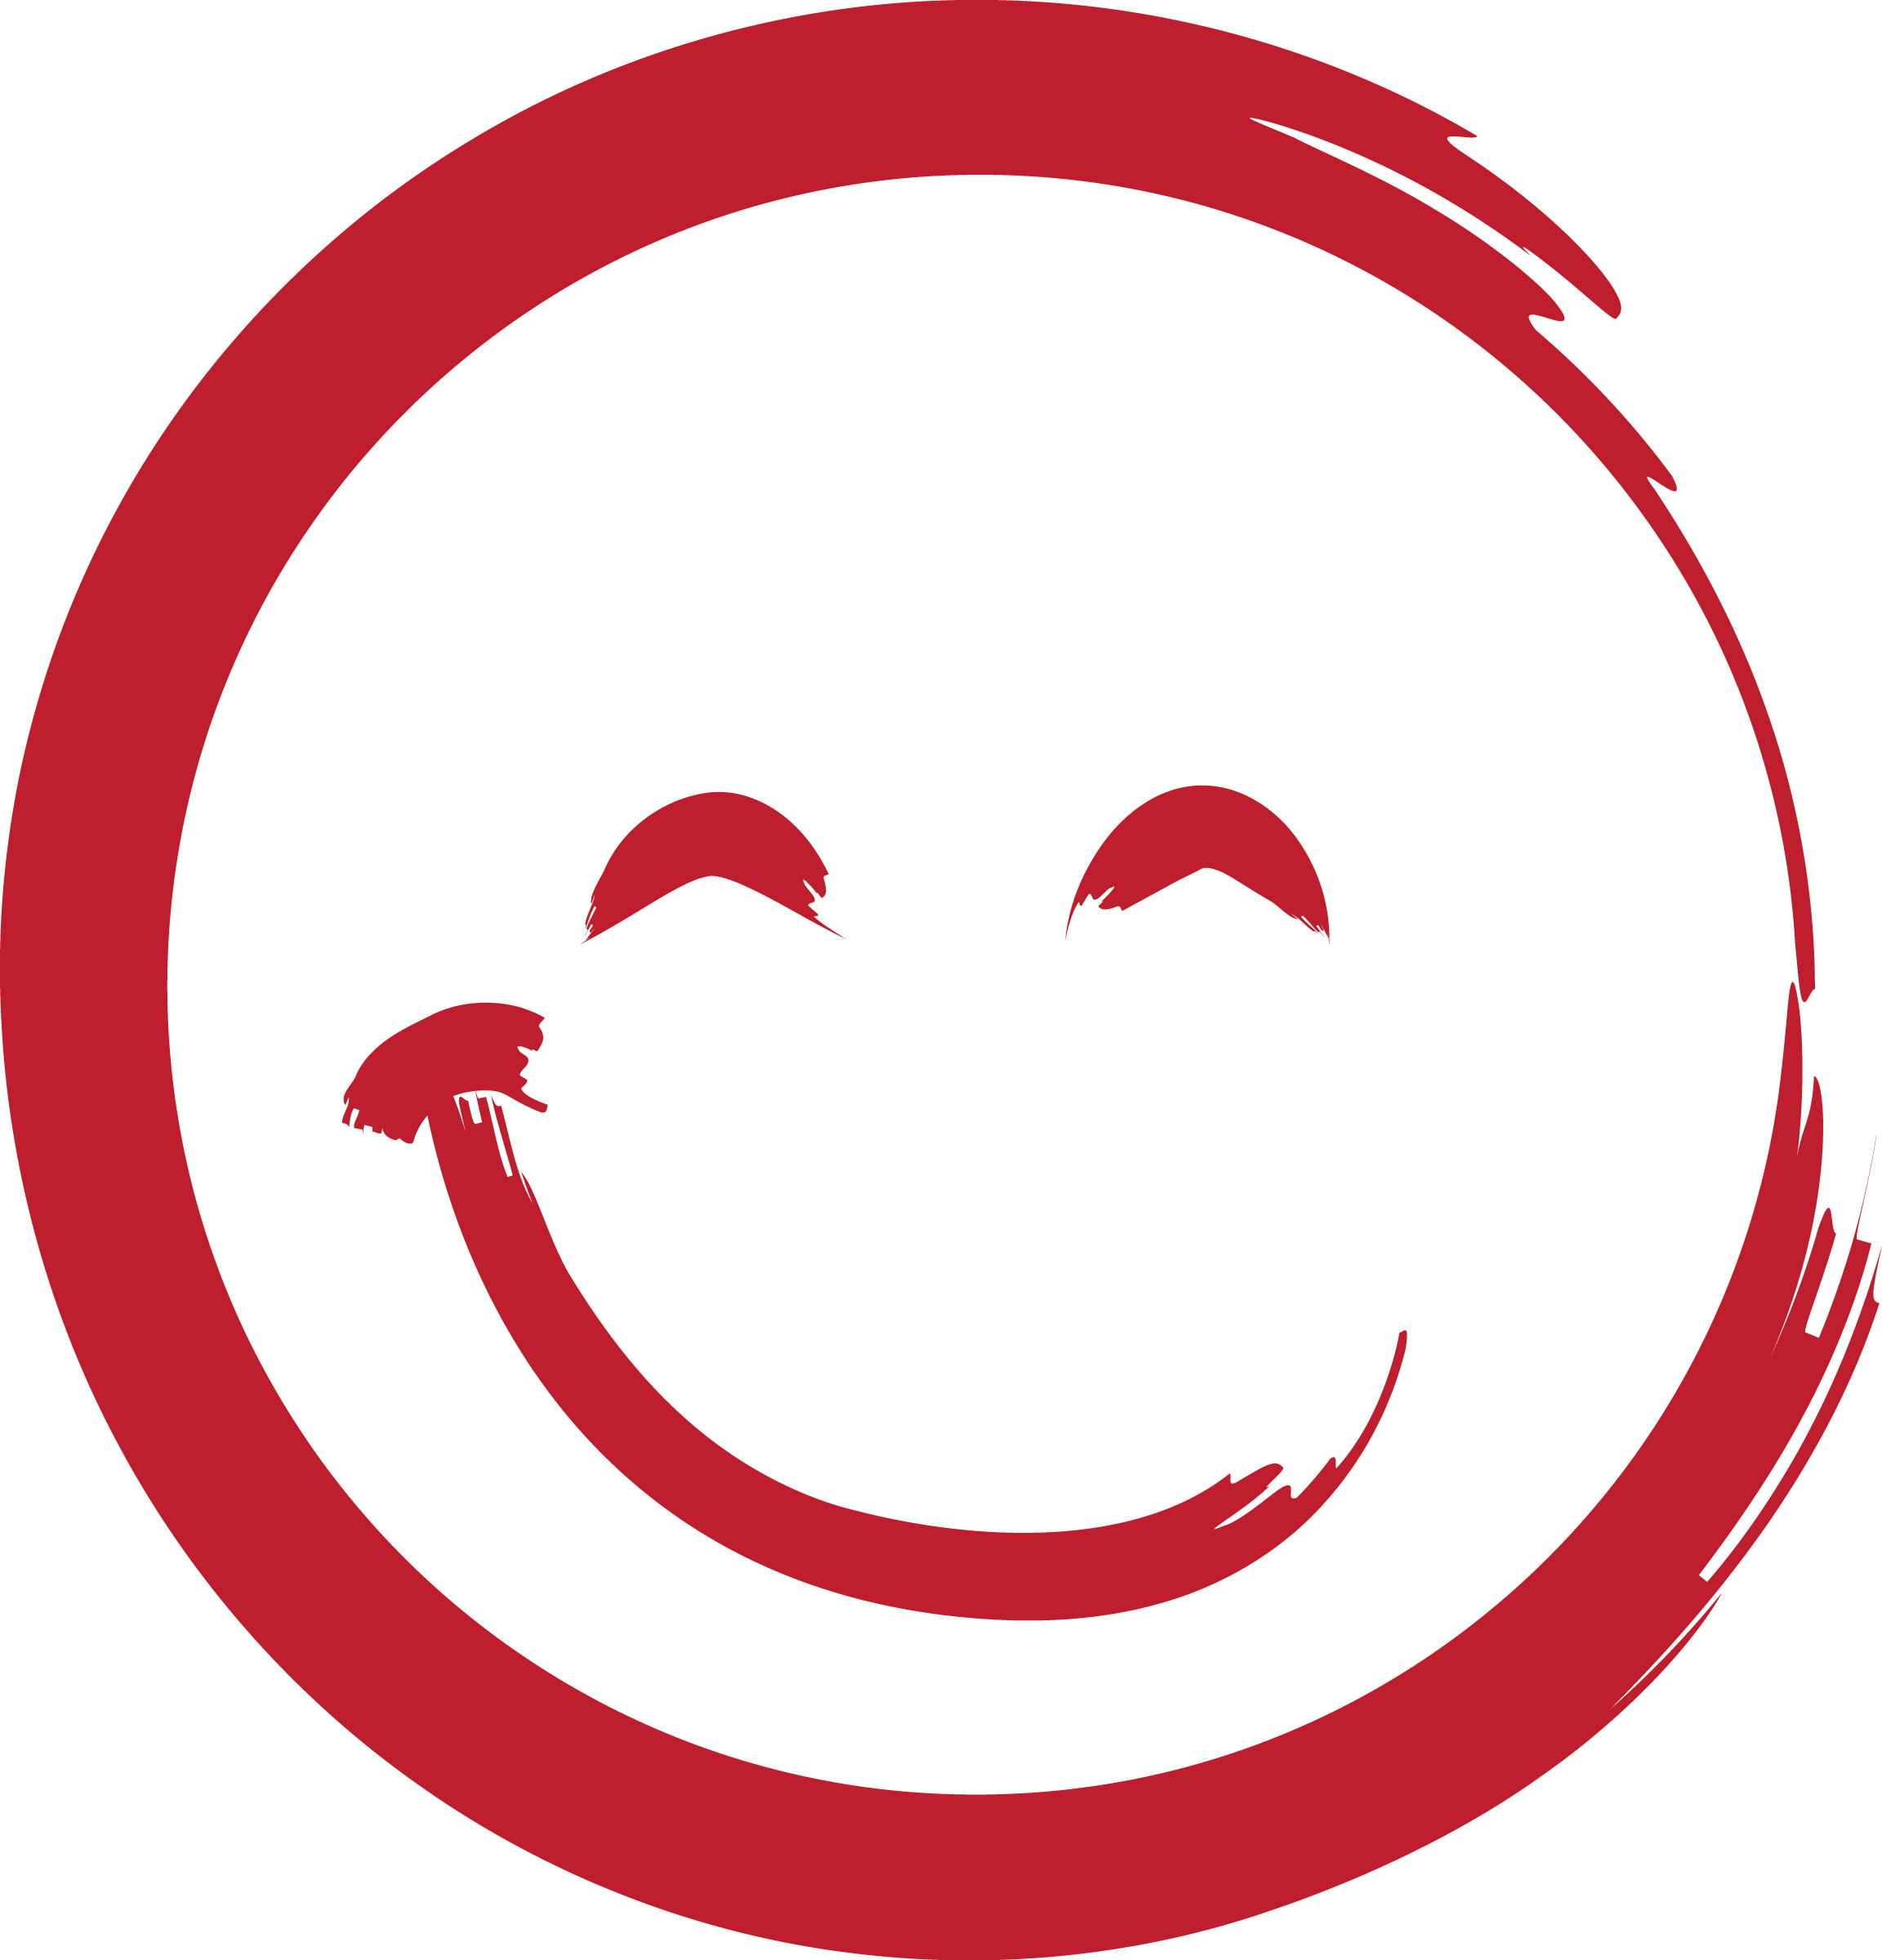 Red Smiley Face Clipart - Clipart Kid